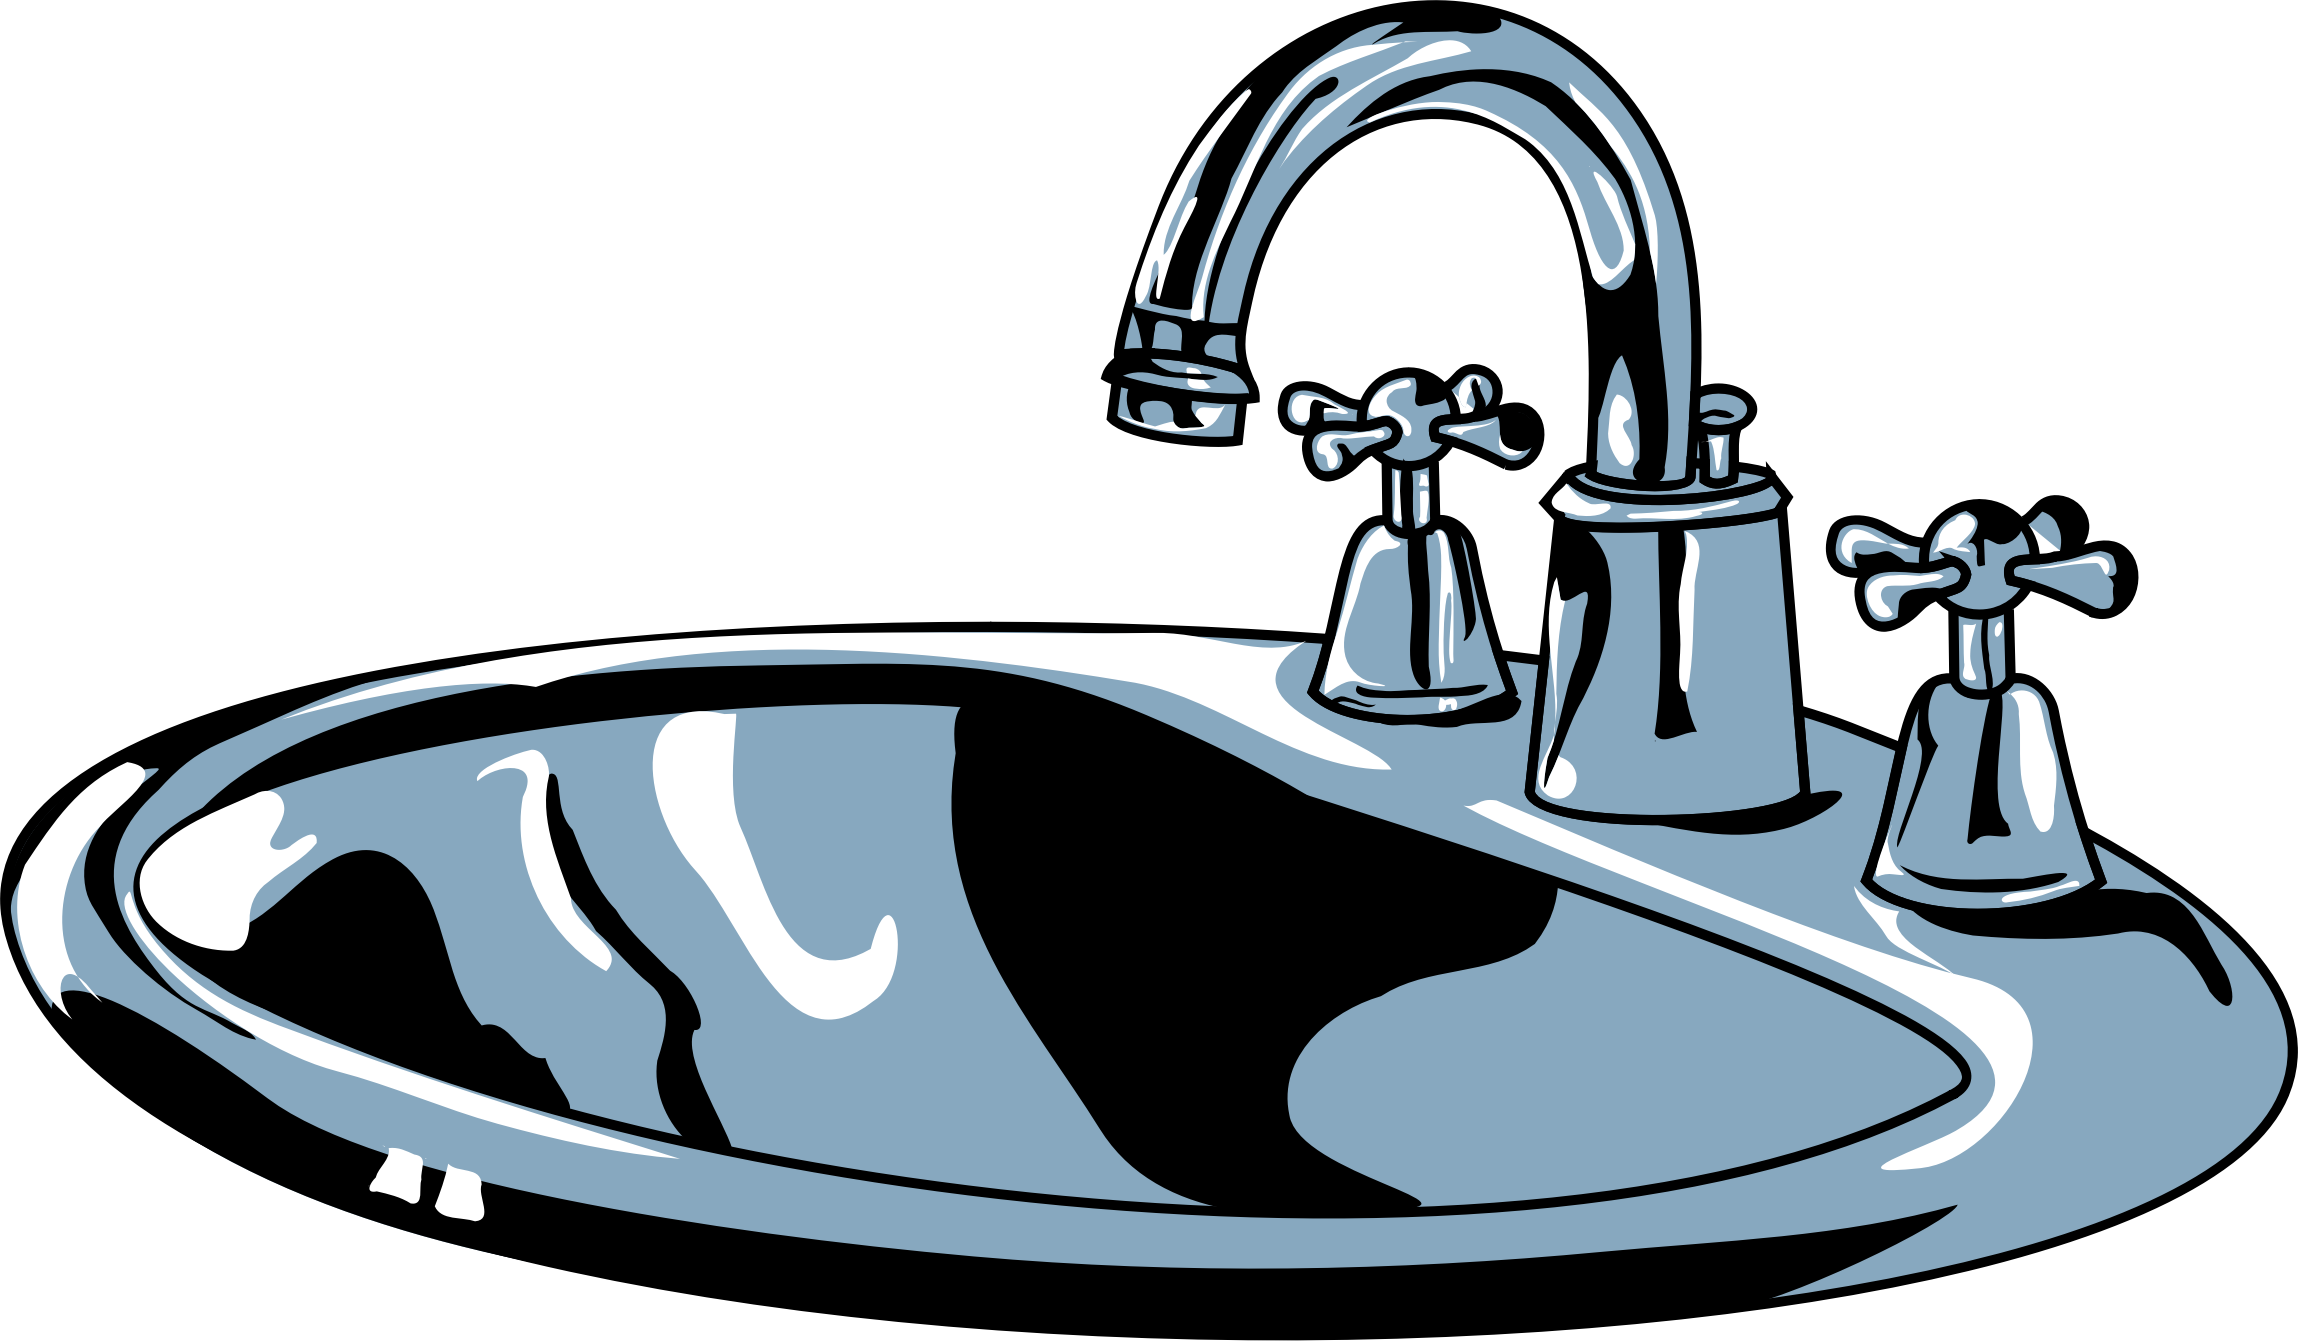 Clean bathroom sink clip art - Sink